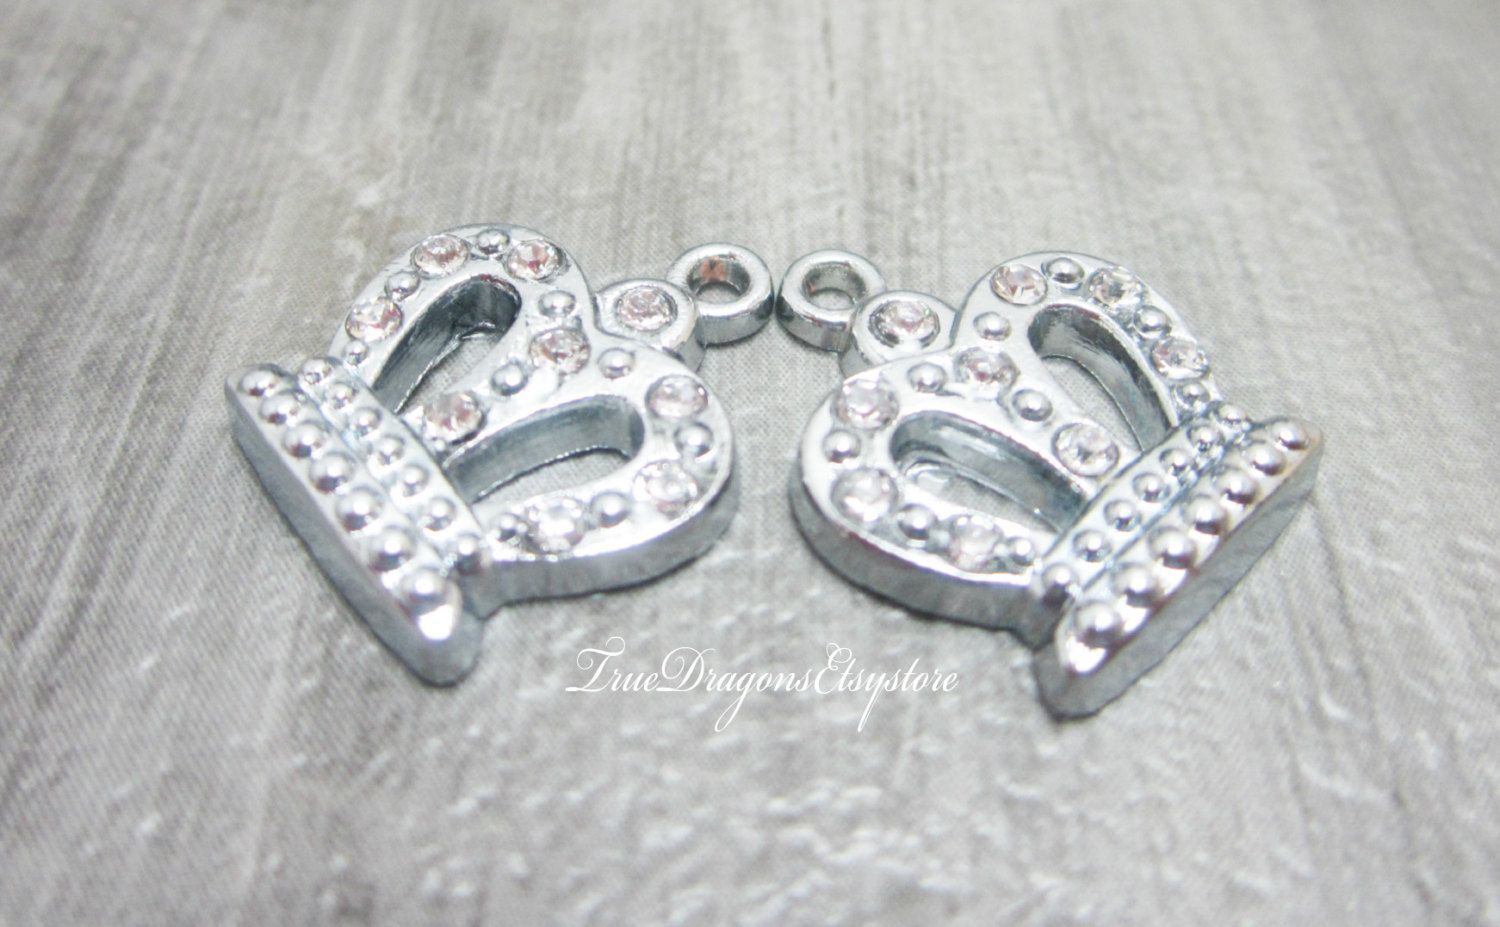 2 Rhinestone Crown Charms Pendants King Queen Crowns Royalty Your Highness by TrueDragonsEtsystore on Etsy